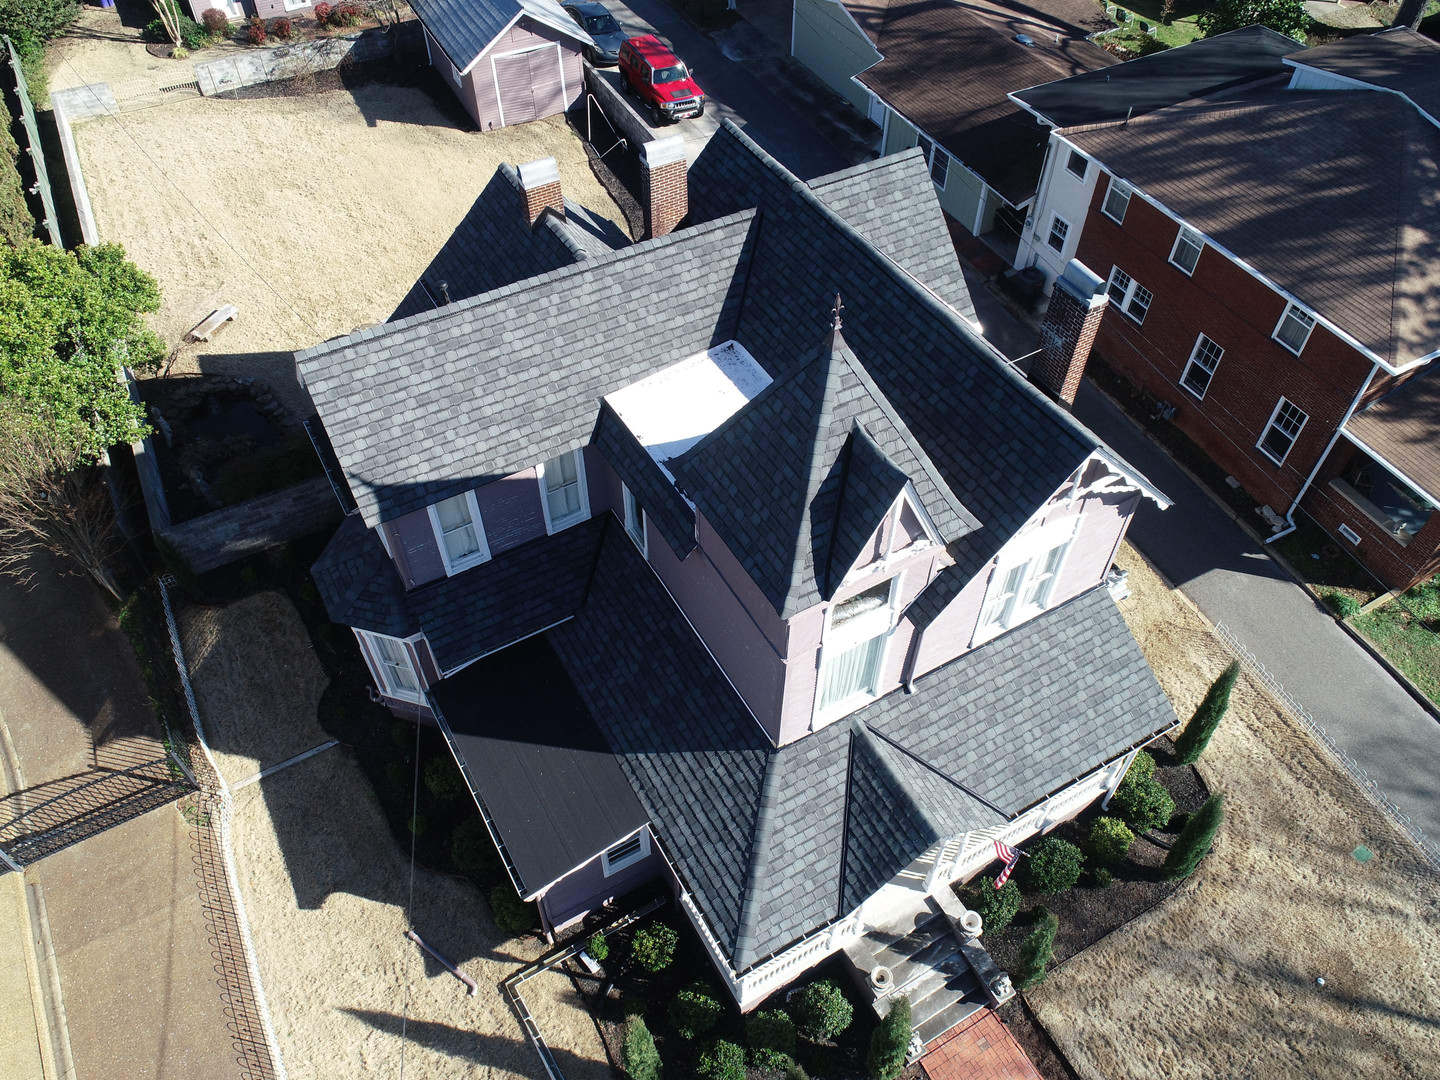 GAF Camelot II with Golden Plege Roofing Warranty in Downtown Florence, Alabama